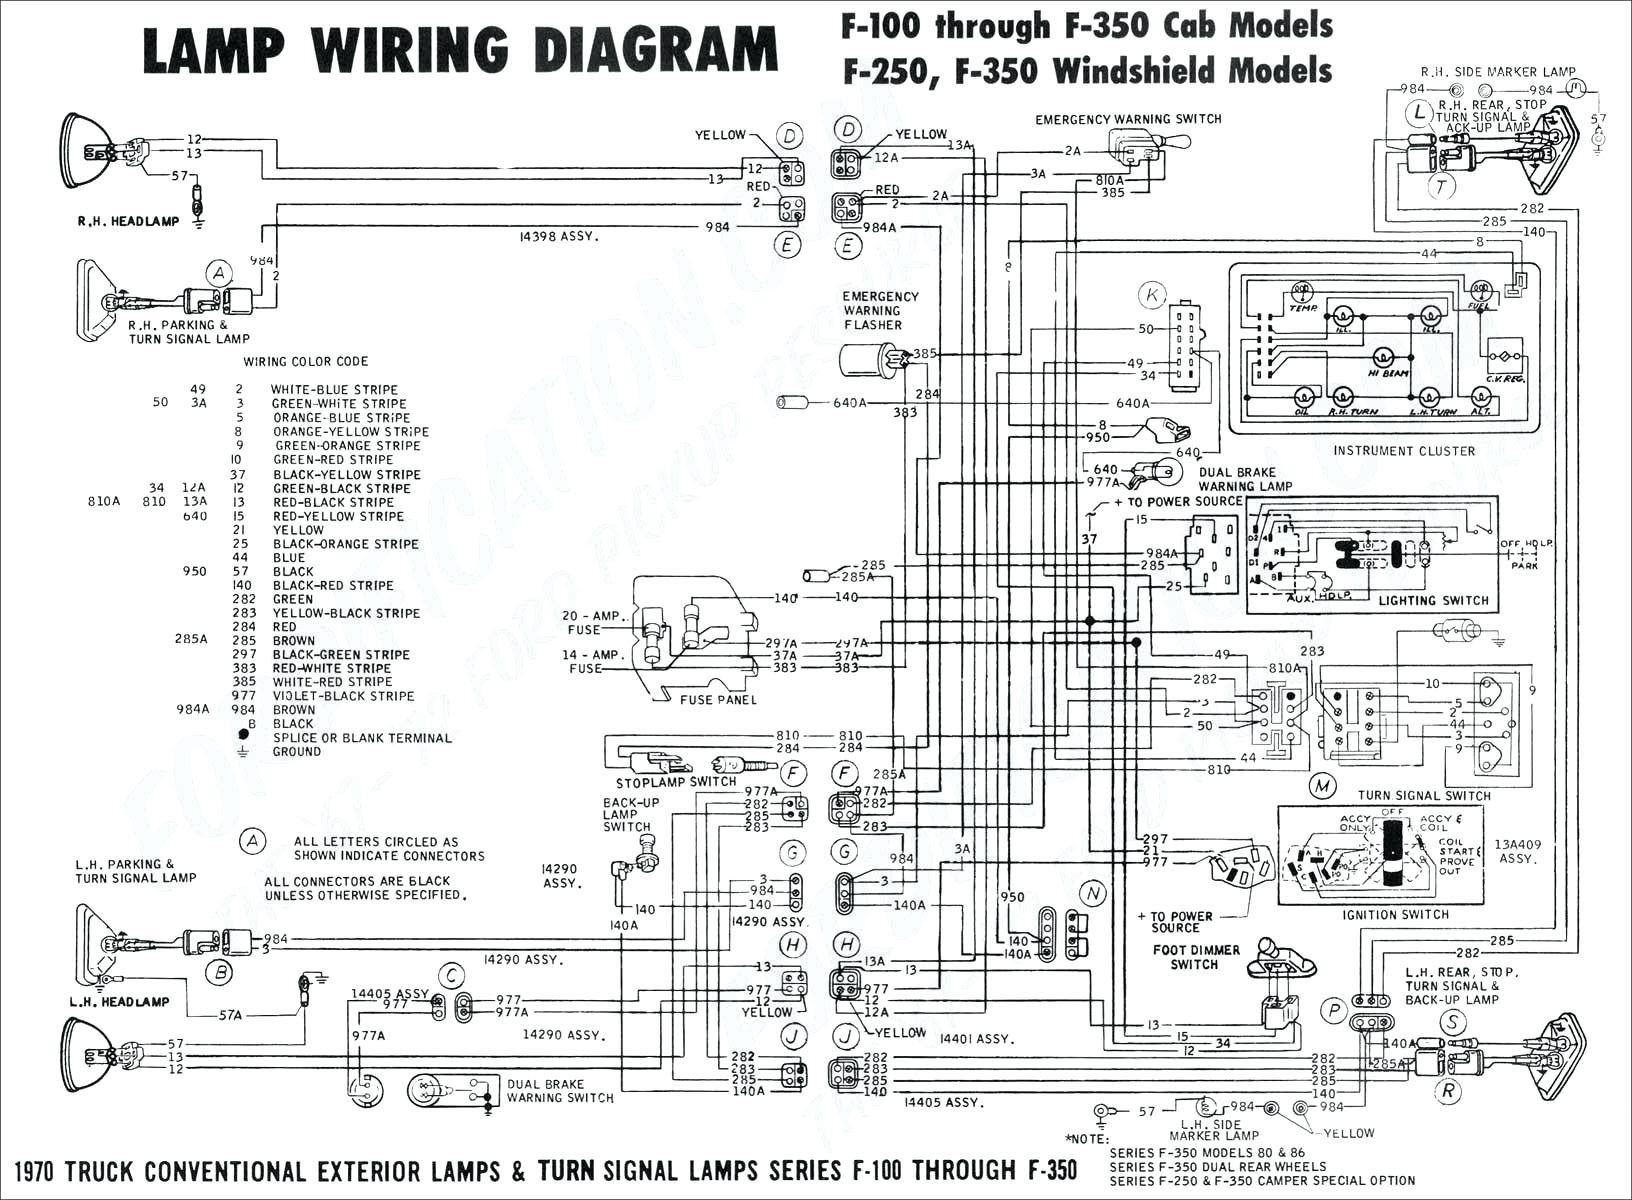 Wiring Diagram For 1968 Ford F250 - Allis Chalmers 180 Wiring Diagram for  Wiring Diagram Schematics   Ford F250 Wiring Schematic      Wiring Diagram Schematics